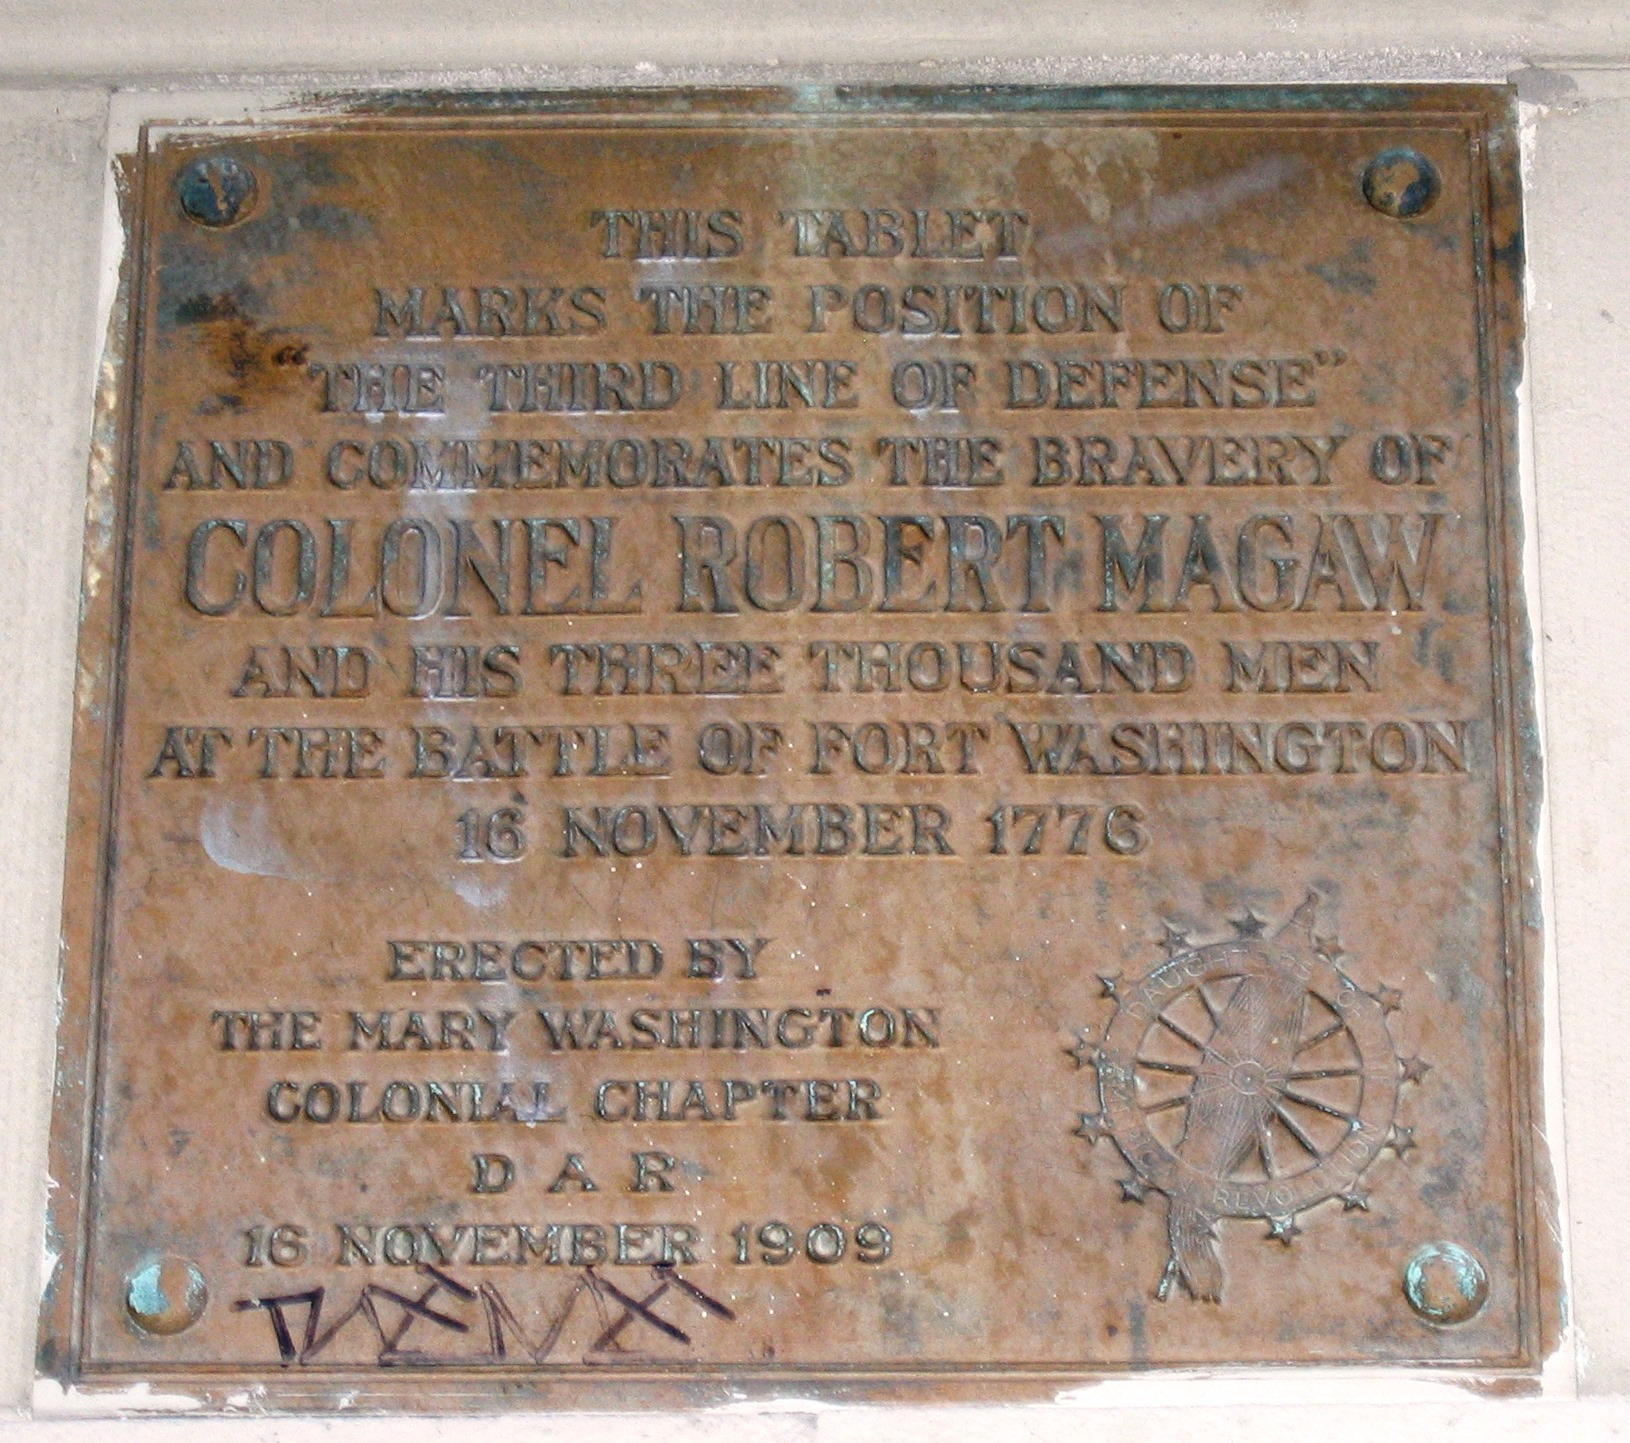 COL Robert Magaw, 11-16-1909